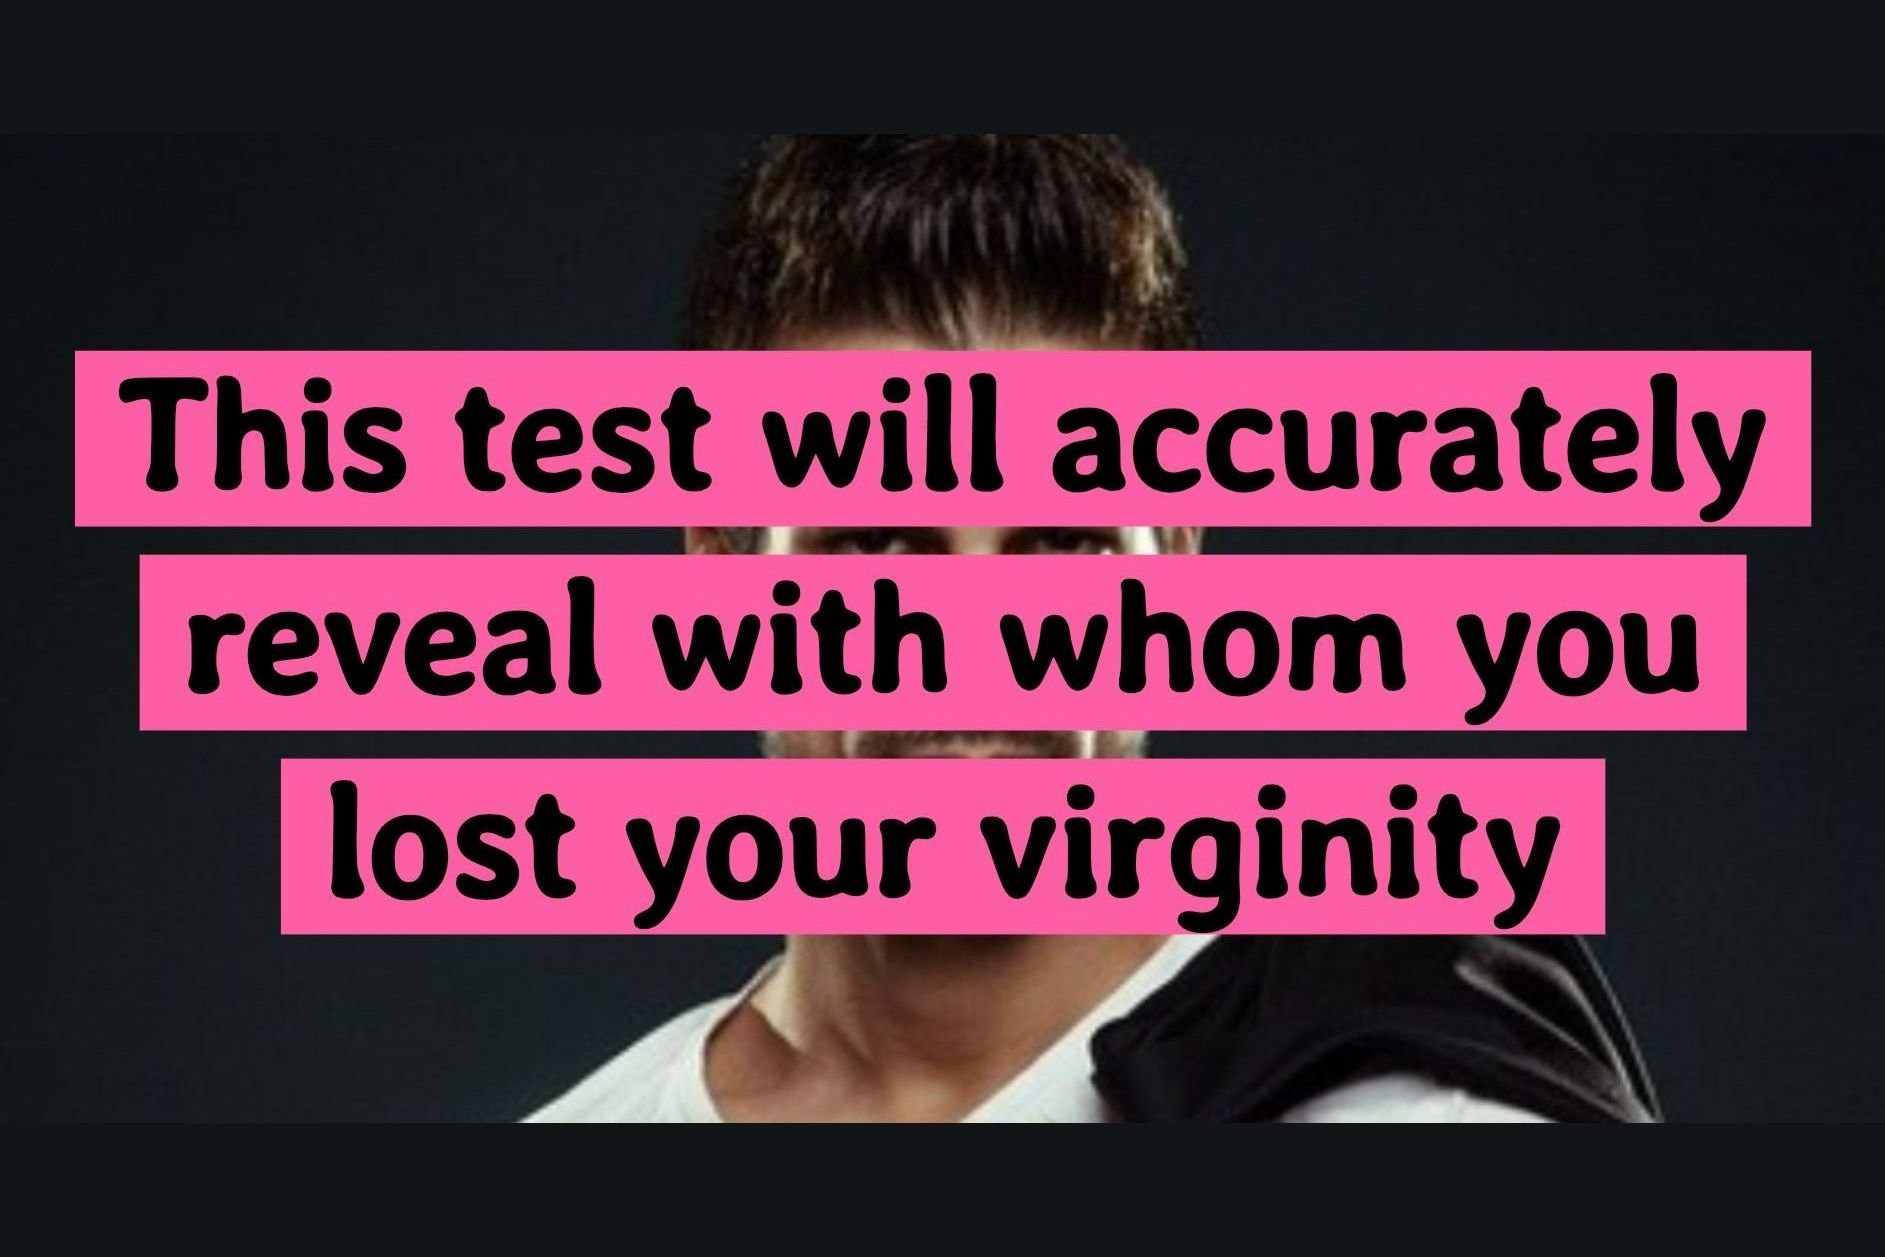 Will you lose your virginity